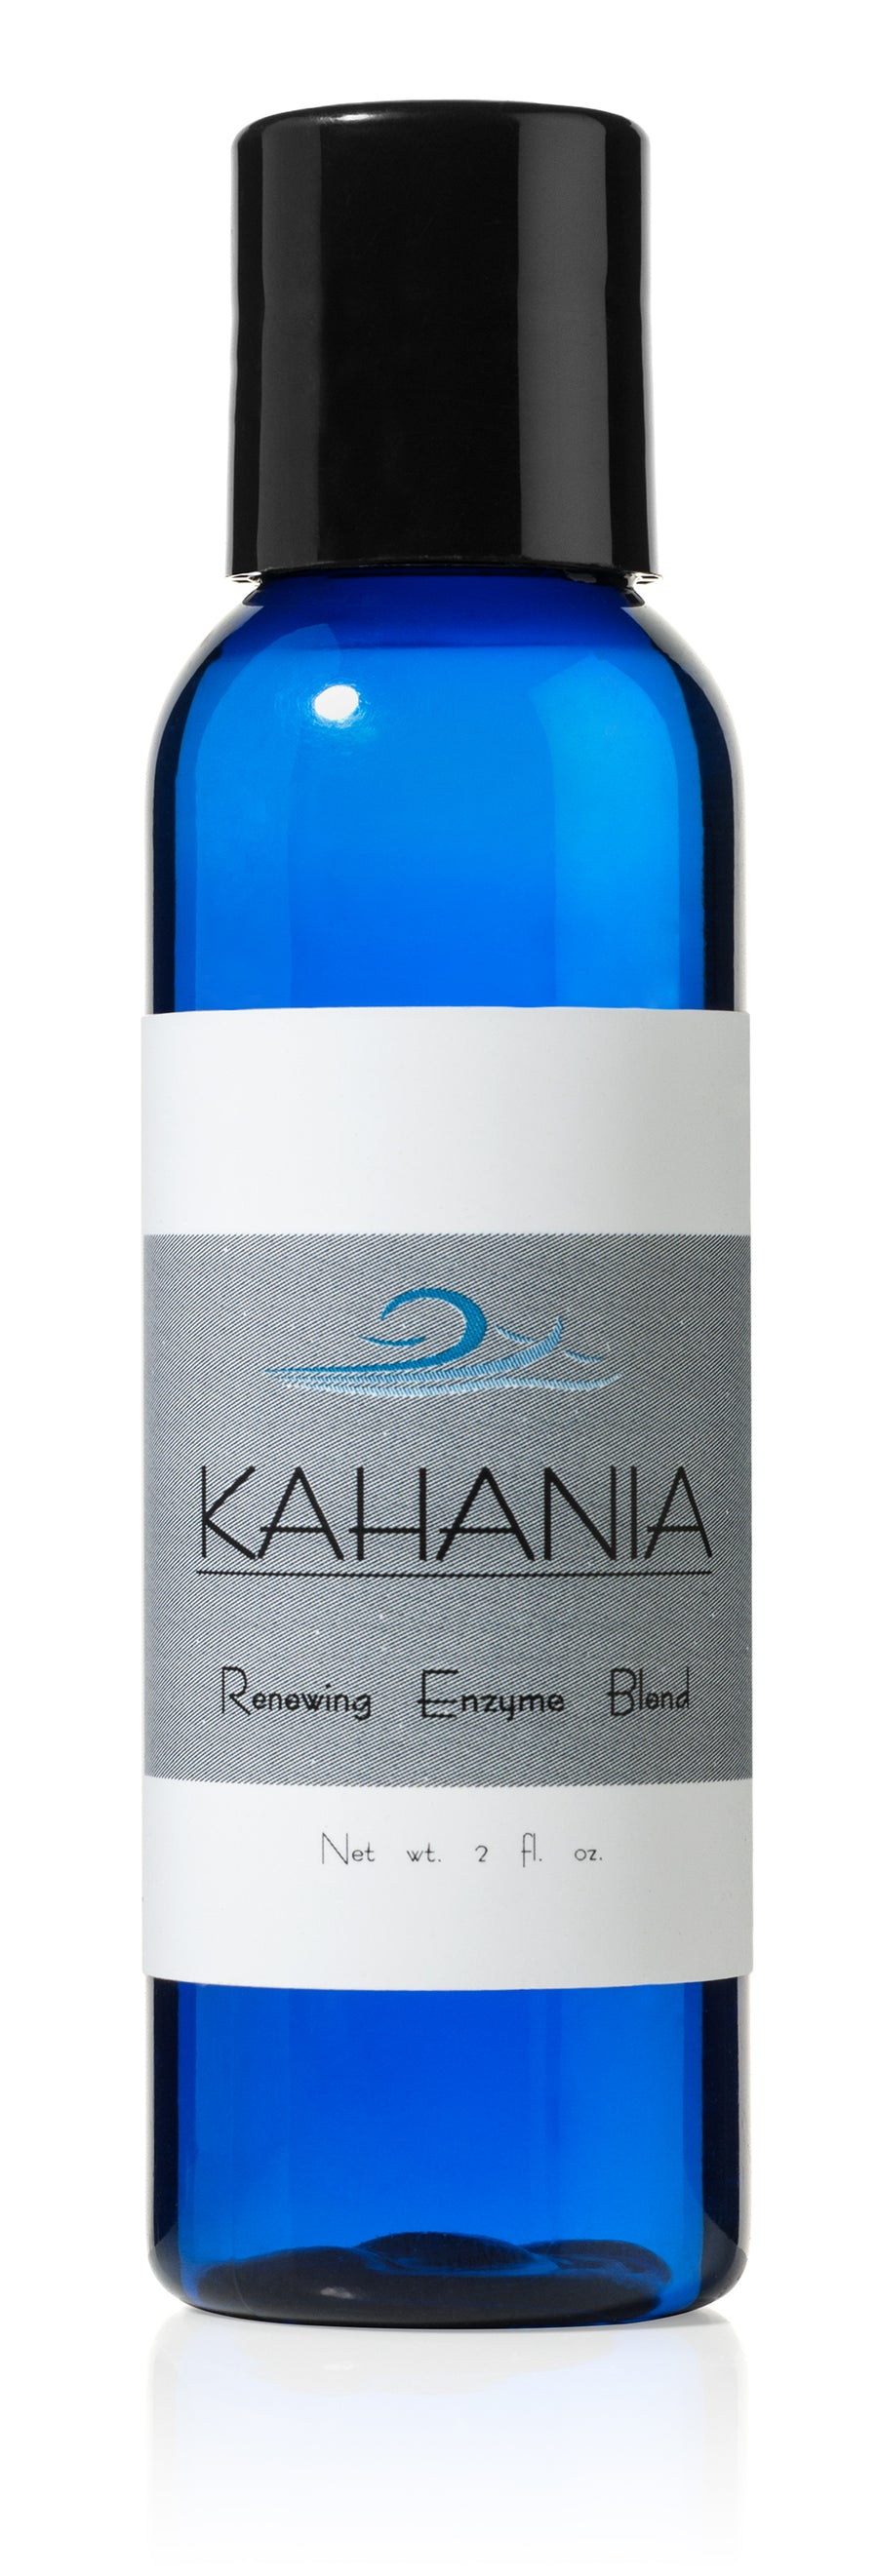 Renewing Face Enzyme Blend - Kahania Natural